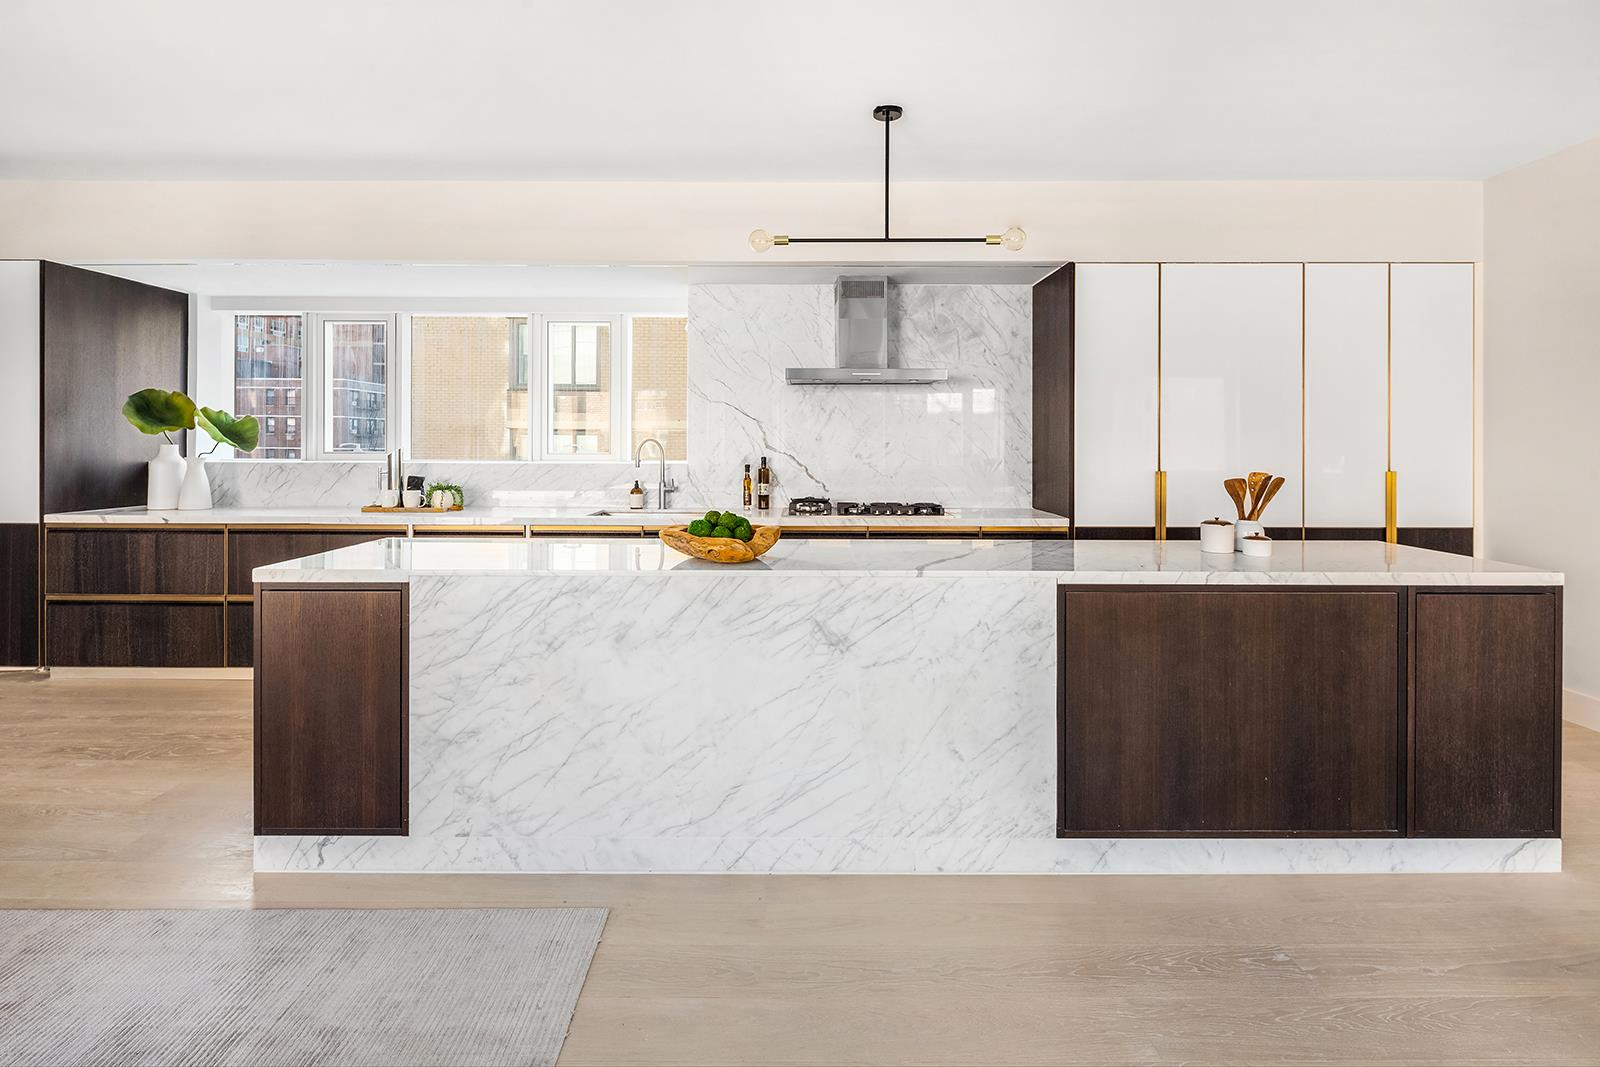 Apartment for sale at 176 East 82nd Street, Apt 6